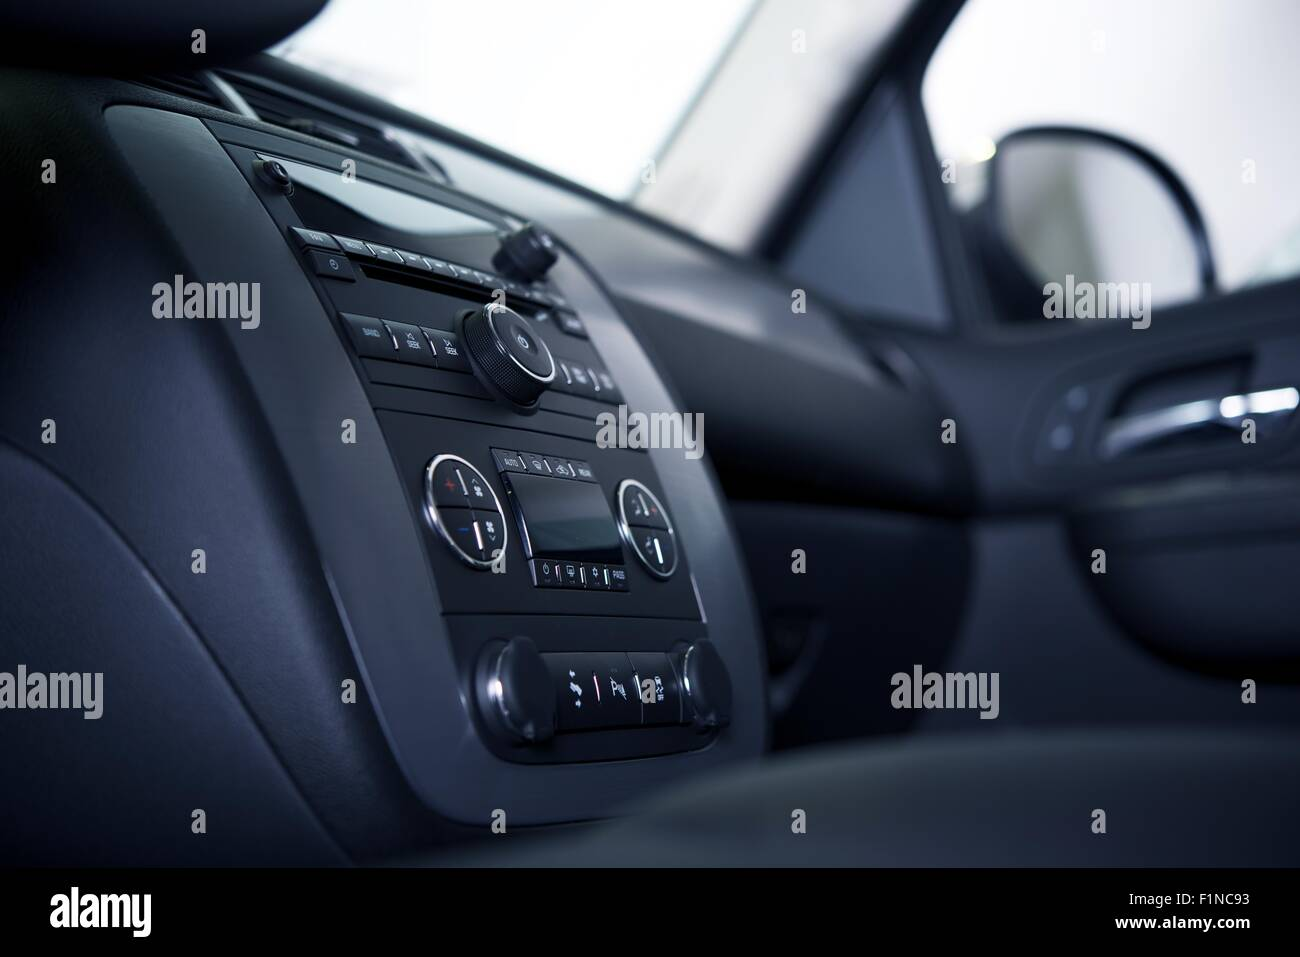 Modern Car Dashboard And Interior From Different Angle Studio Stock Photo Alamy